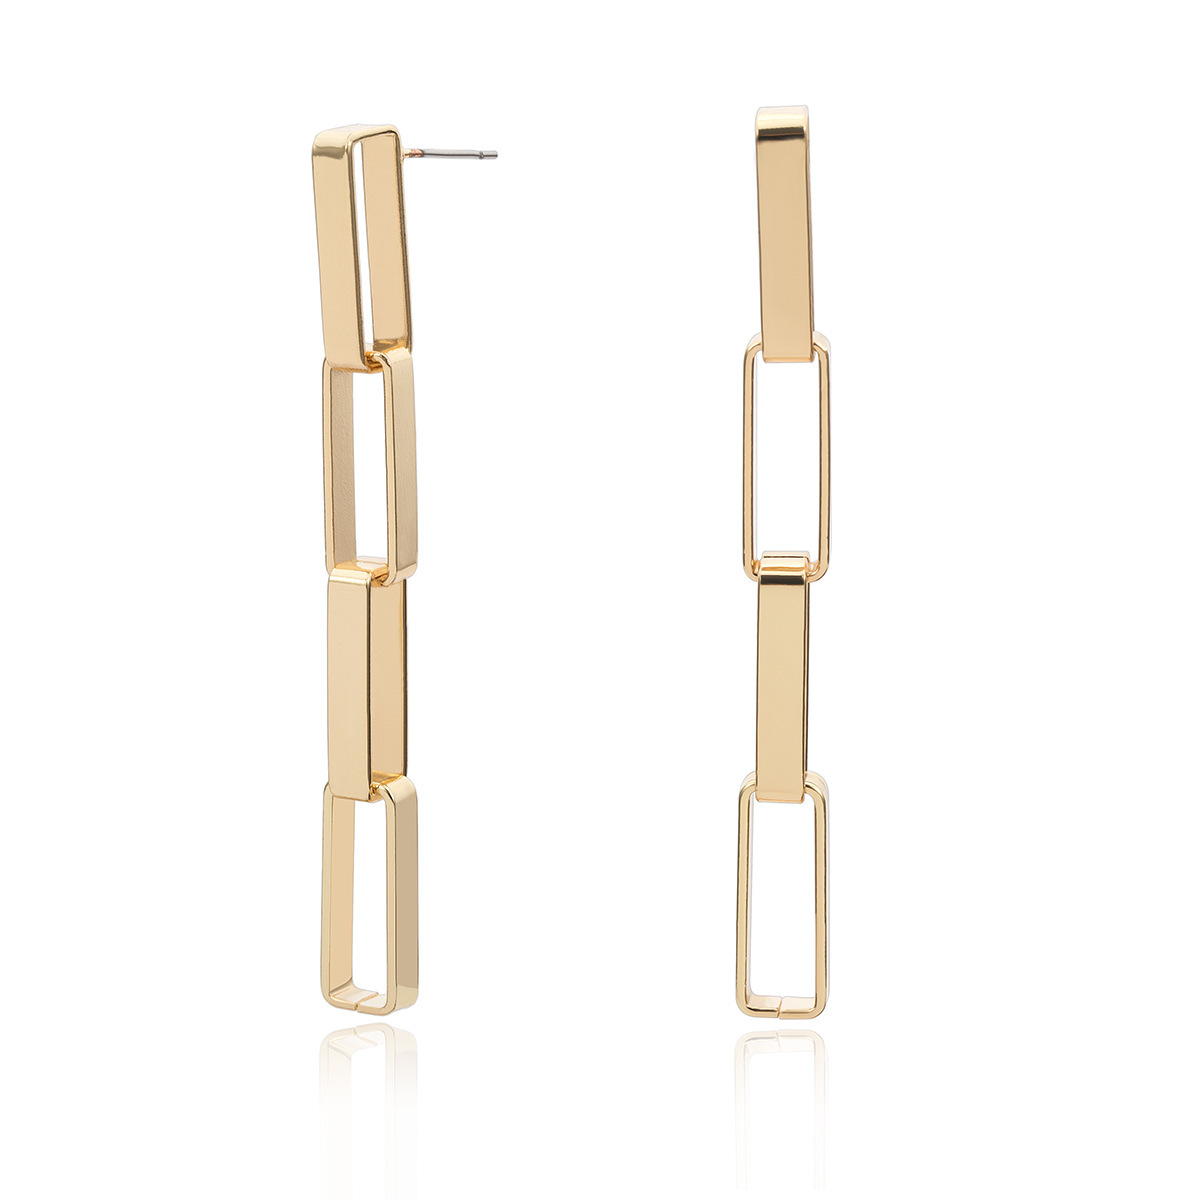 New Long Earrings for Women Fashion 2019 Korean Earrings Hanging Punk Gold Silver Chain Drop Earrings Female Earings Jewelry in Drop Earrings from Jewelry Accessories